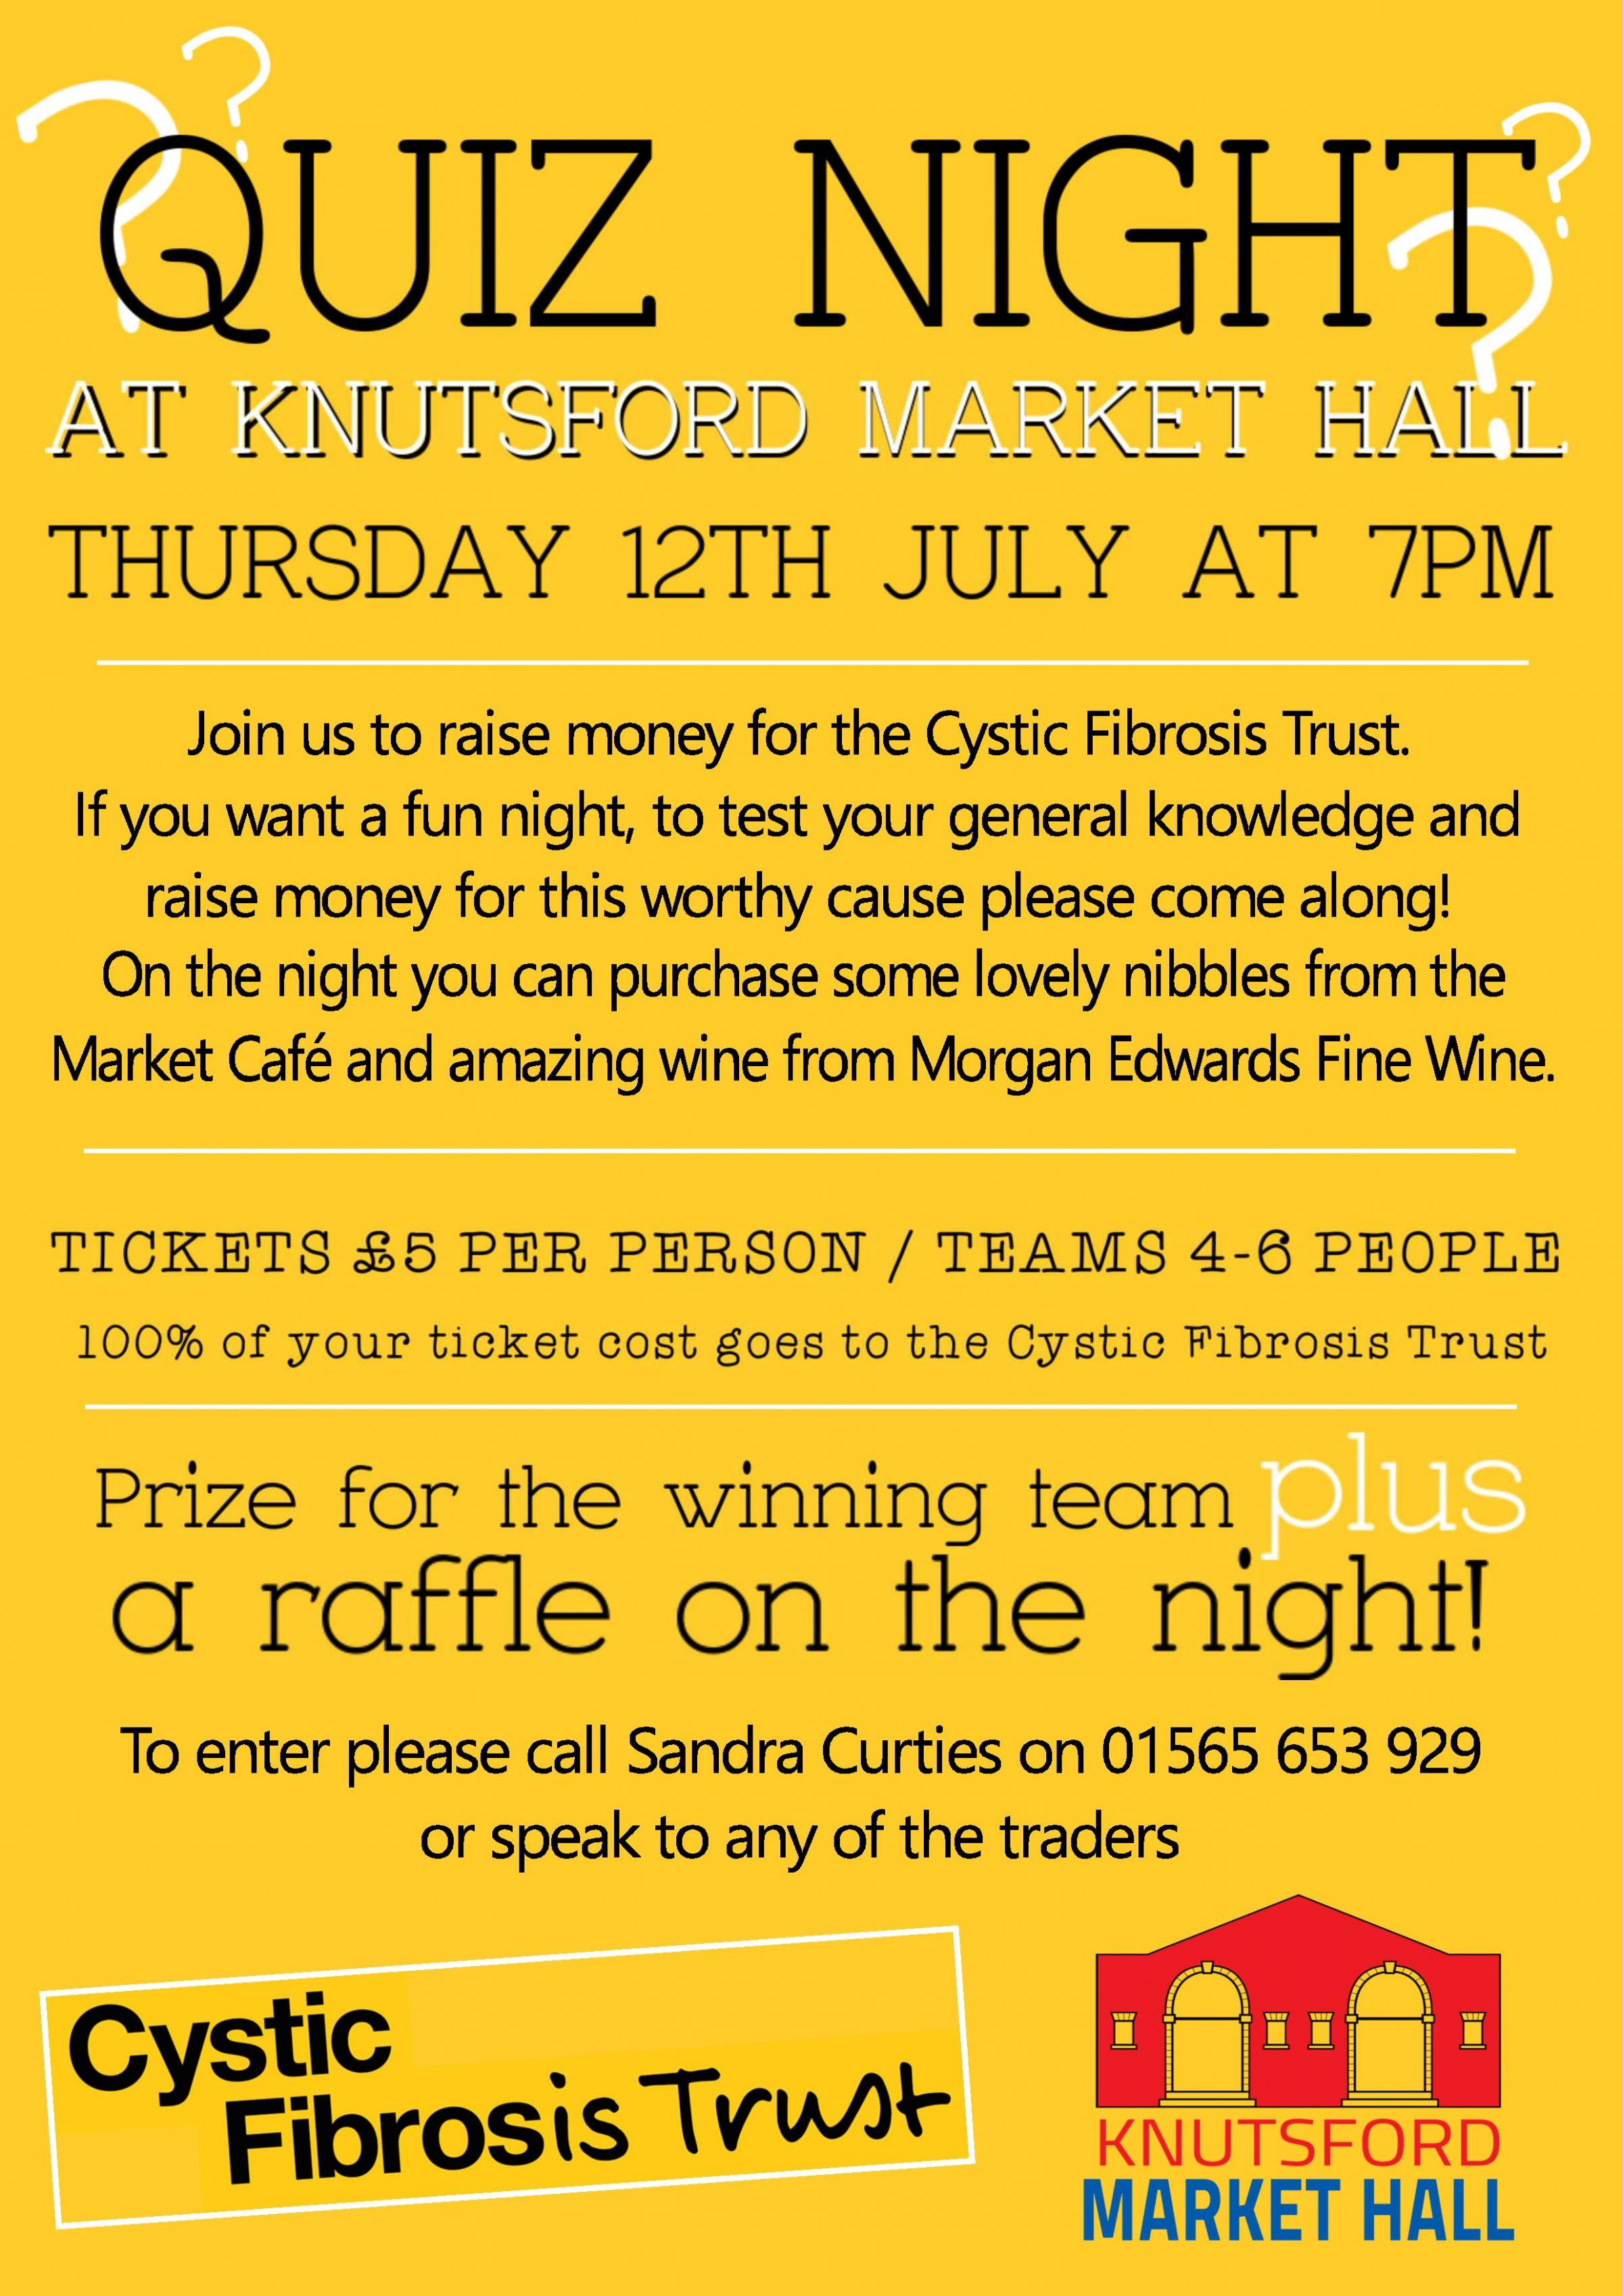 Quiz Night at Knutsford Market Hall in aid of Cystic Fibrosis Trust